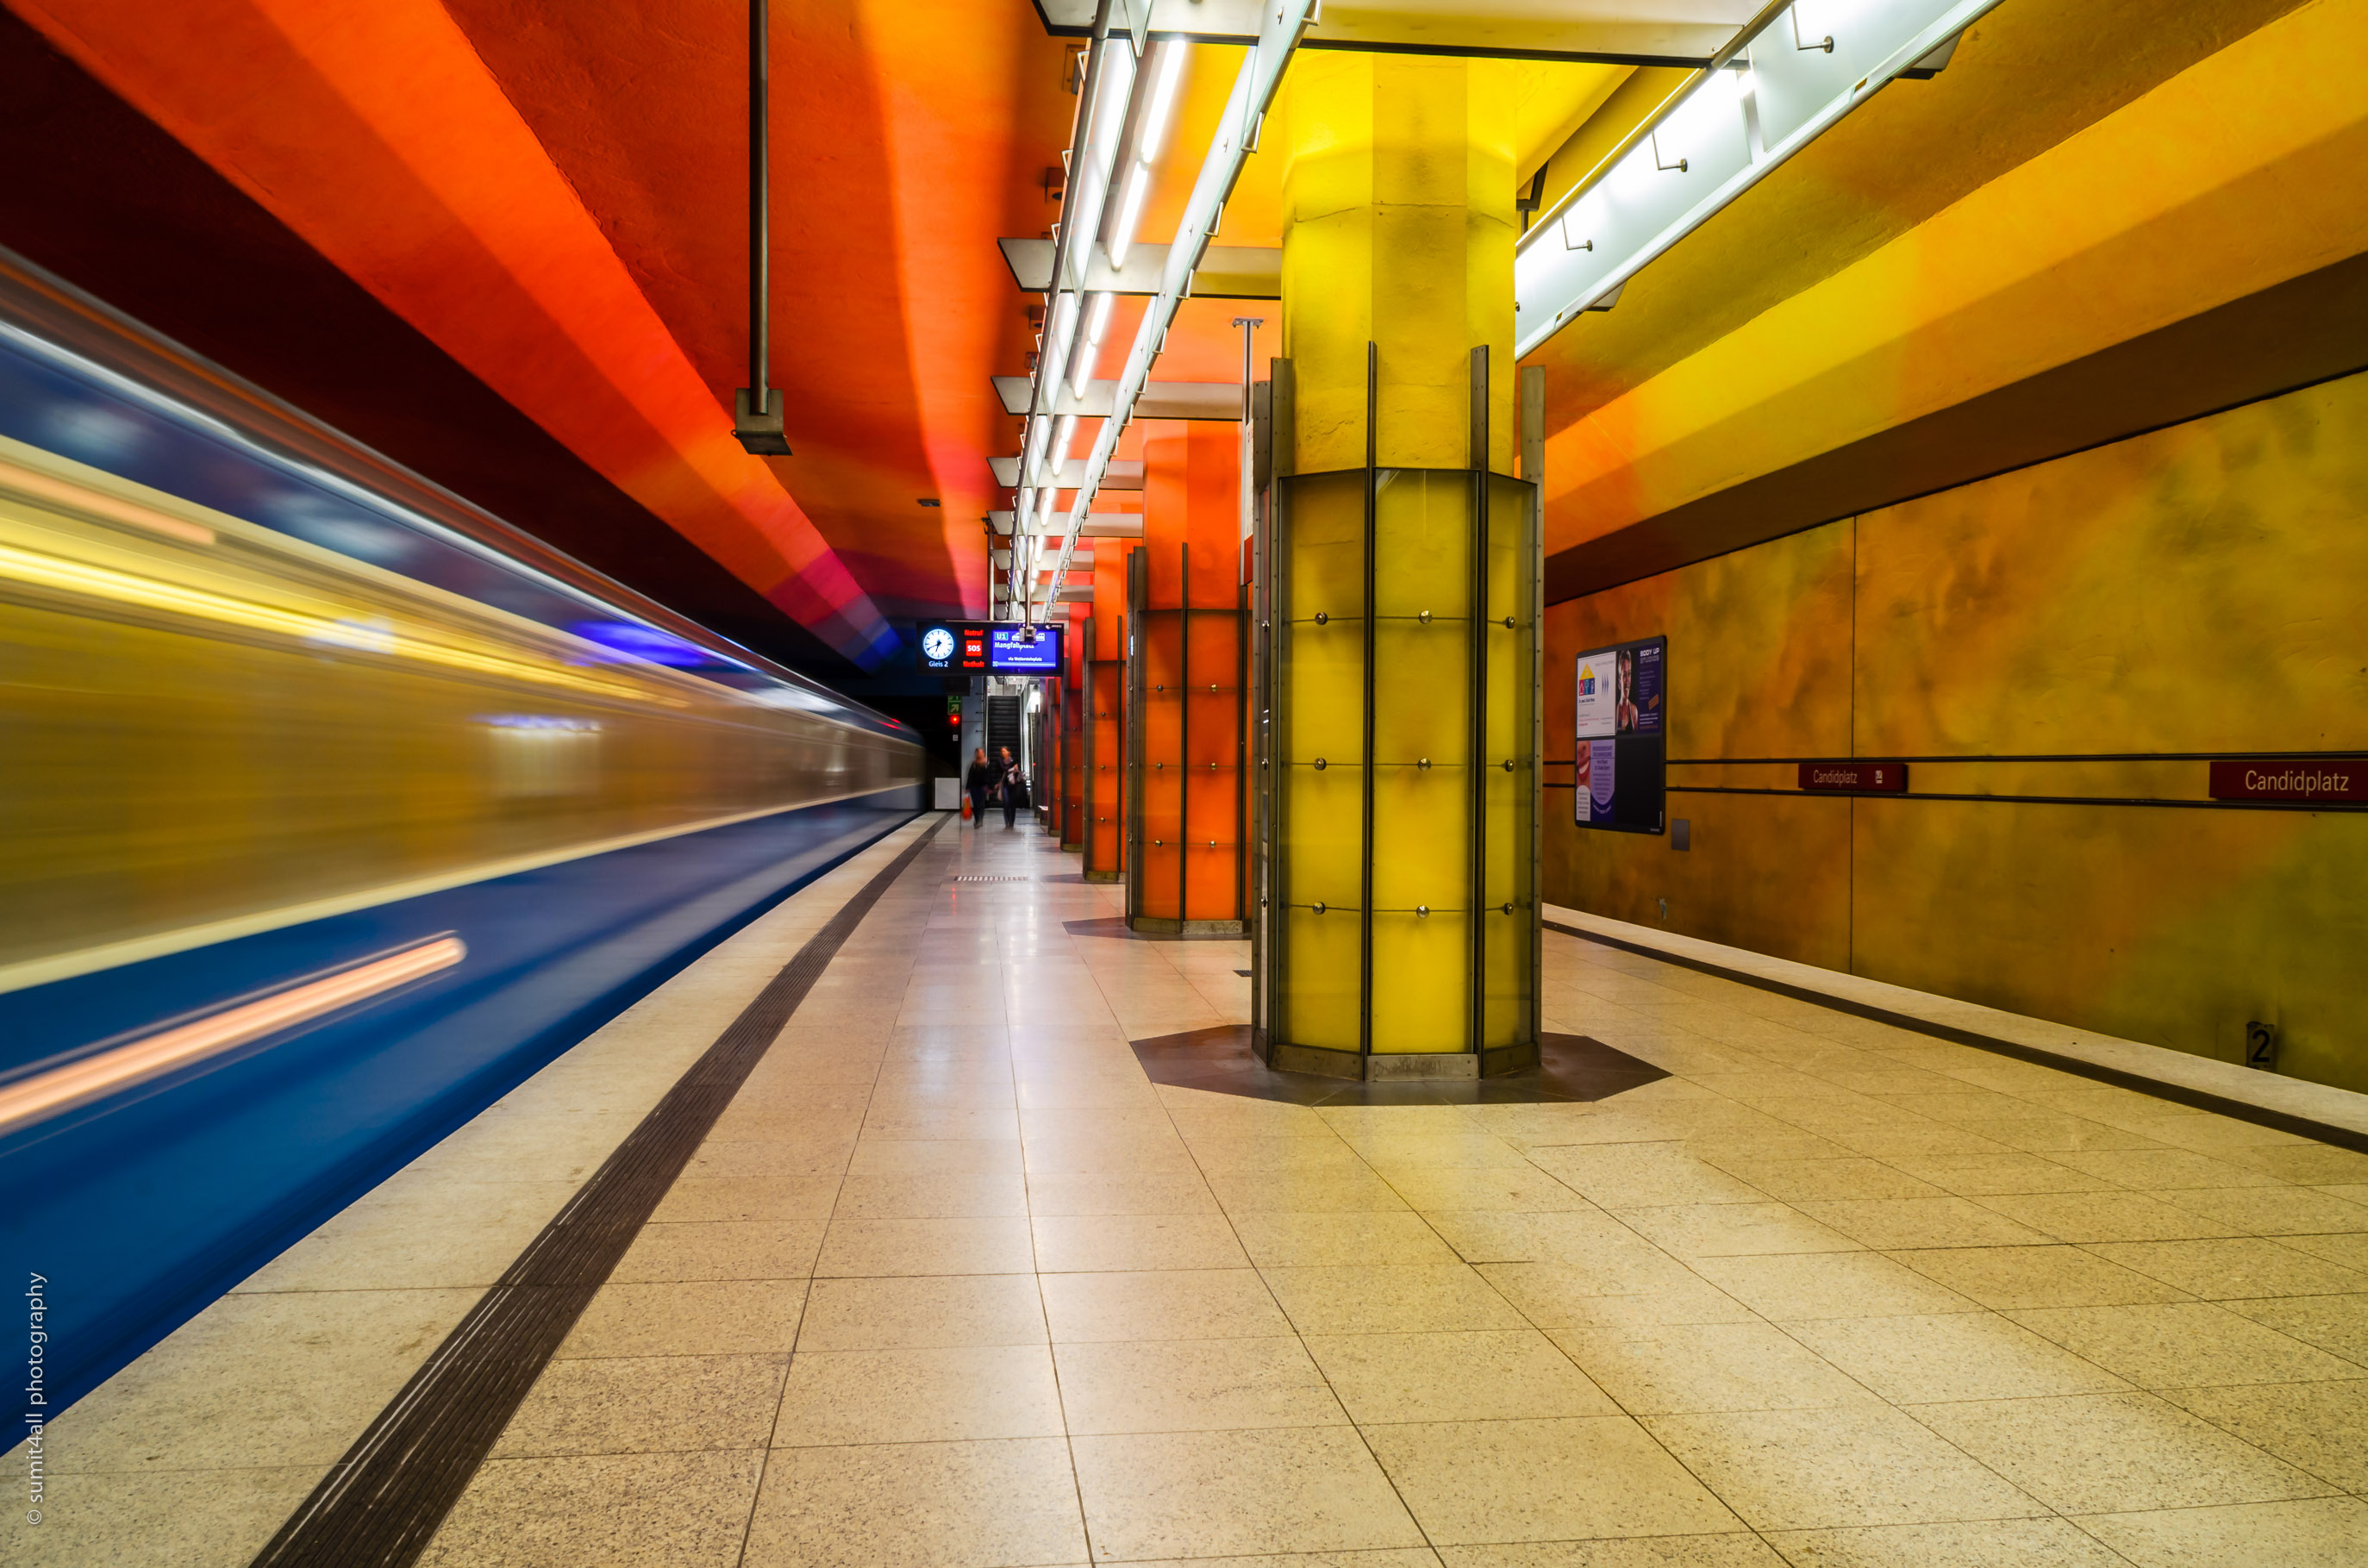 Bright Colors Inside a Metro Station in Munich